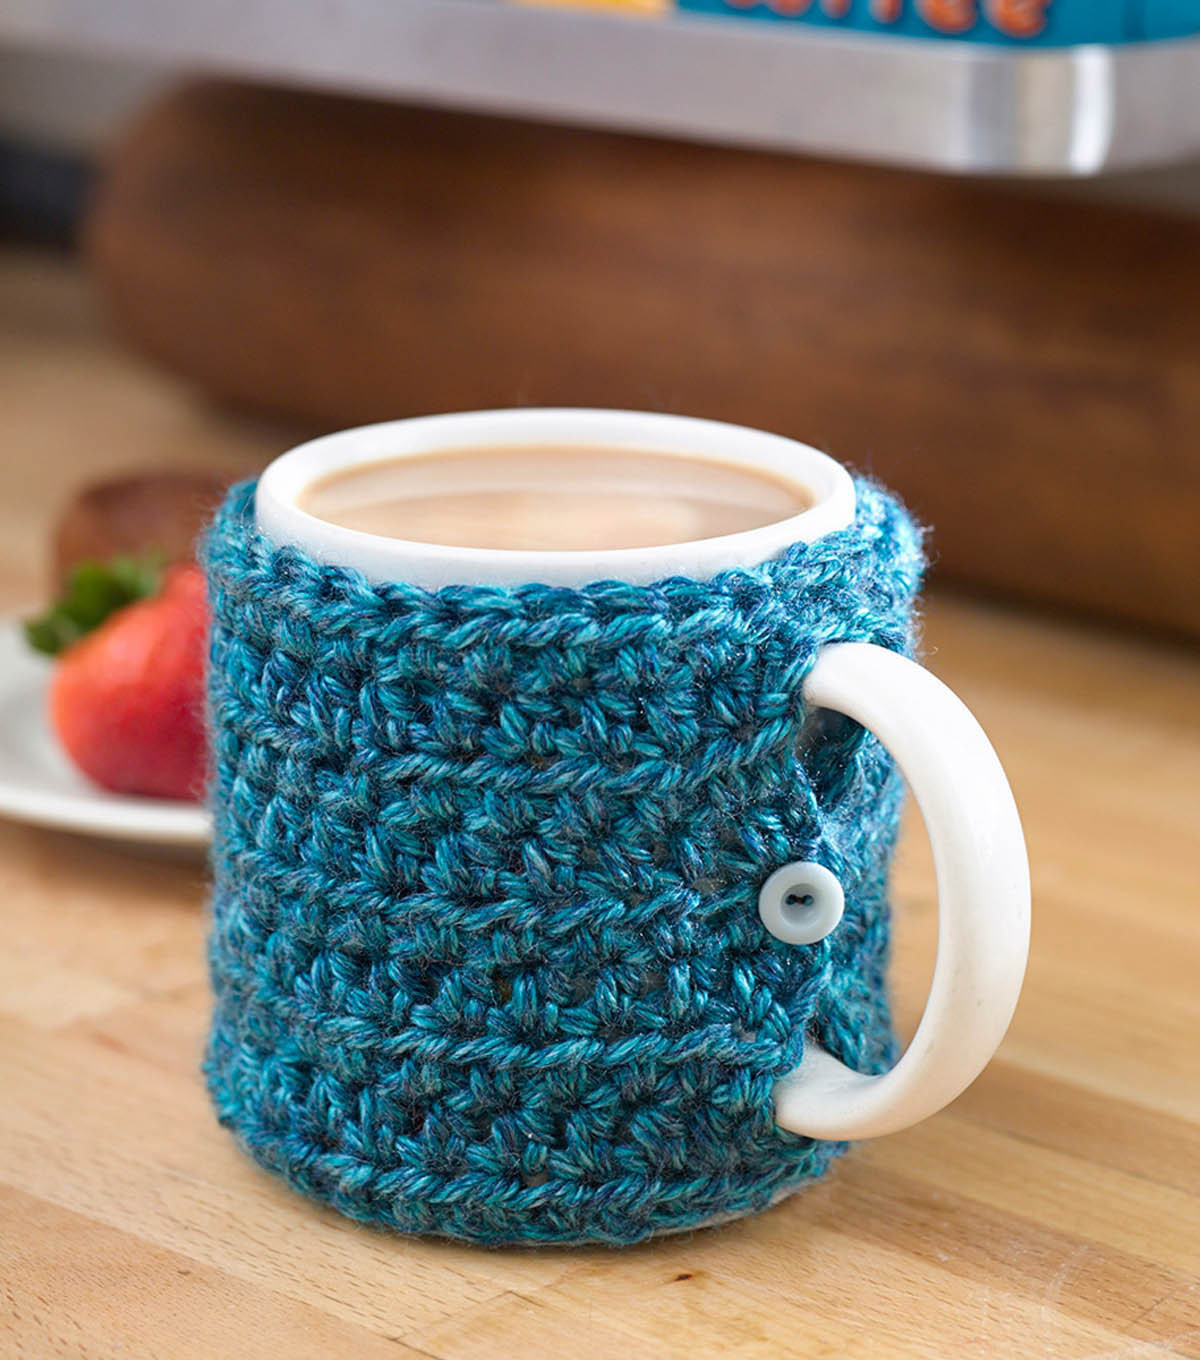 Crochet Coffee Cup Cozy Best Of Craftdrawer Crafts Free Easy to Crochet Mug Cozy Patterns Of Crochet Coffee Cup Cozy Elegant Basketweave Cup Cozy Crochet Pattern with